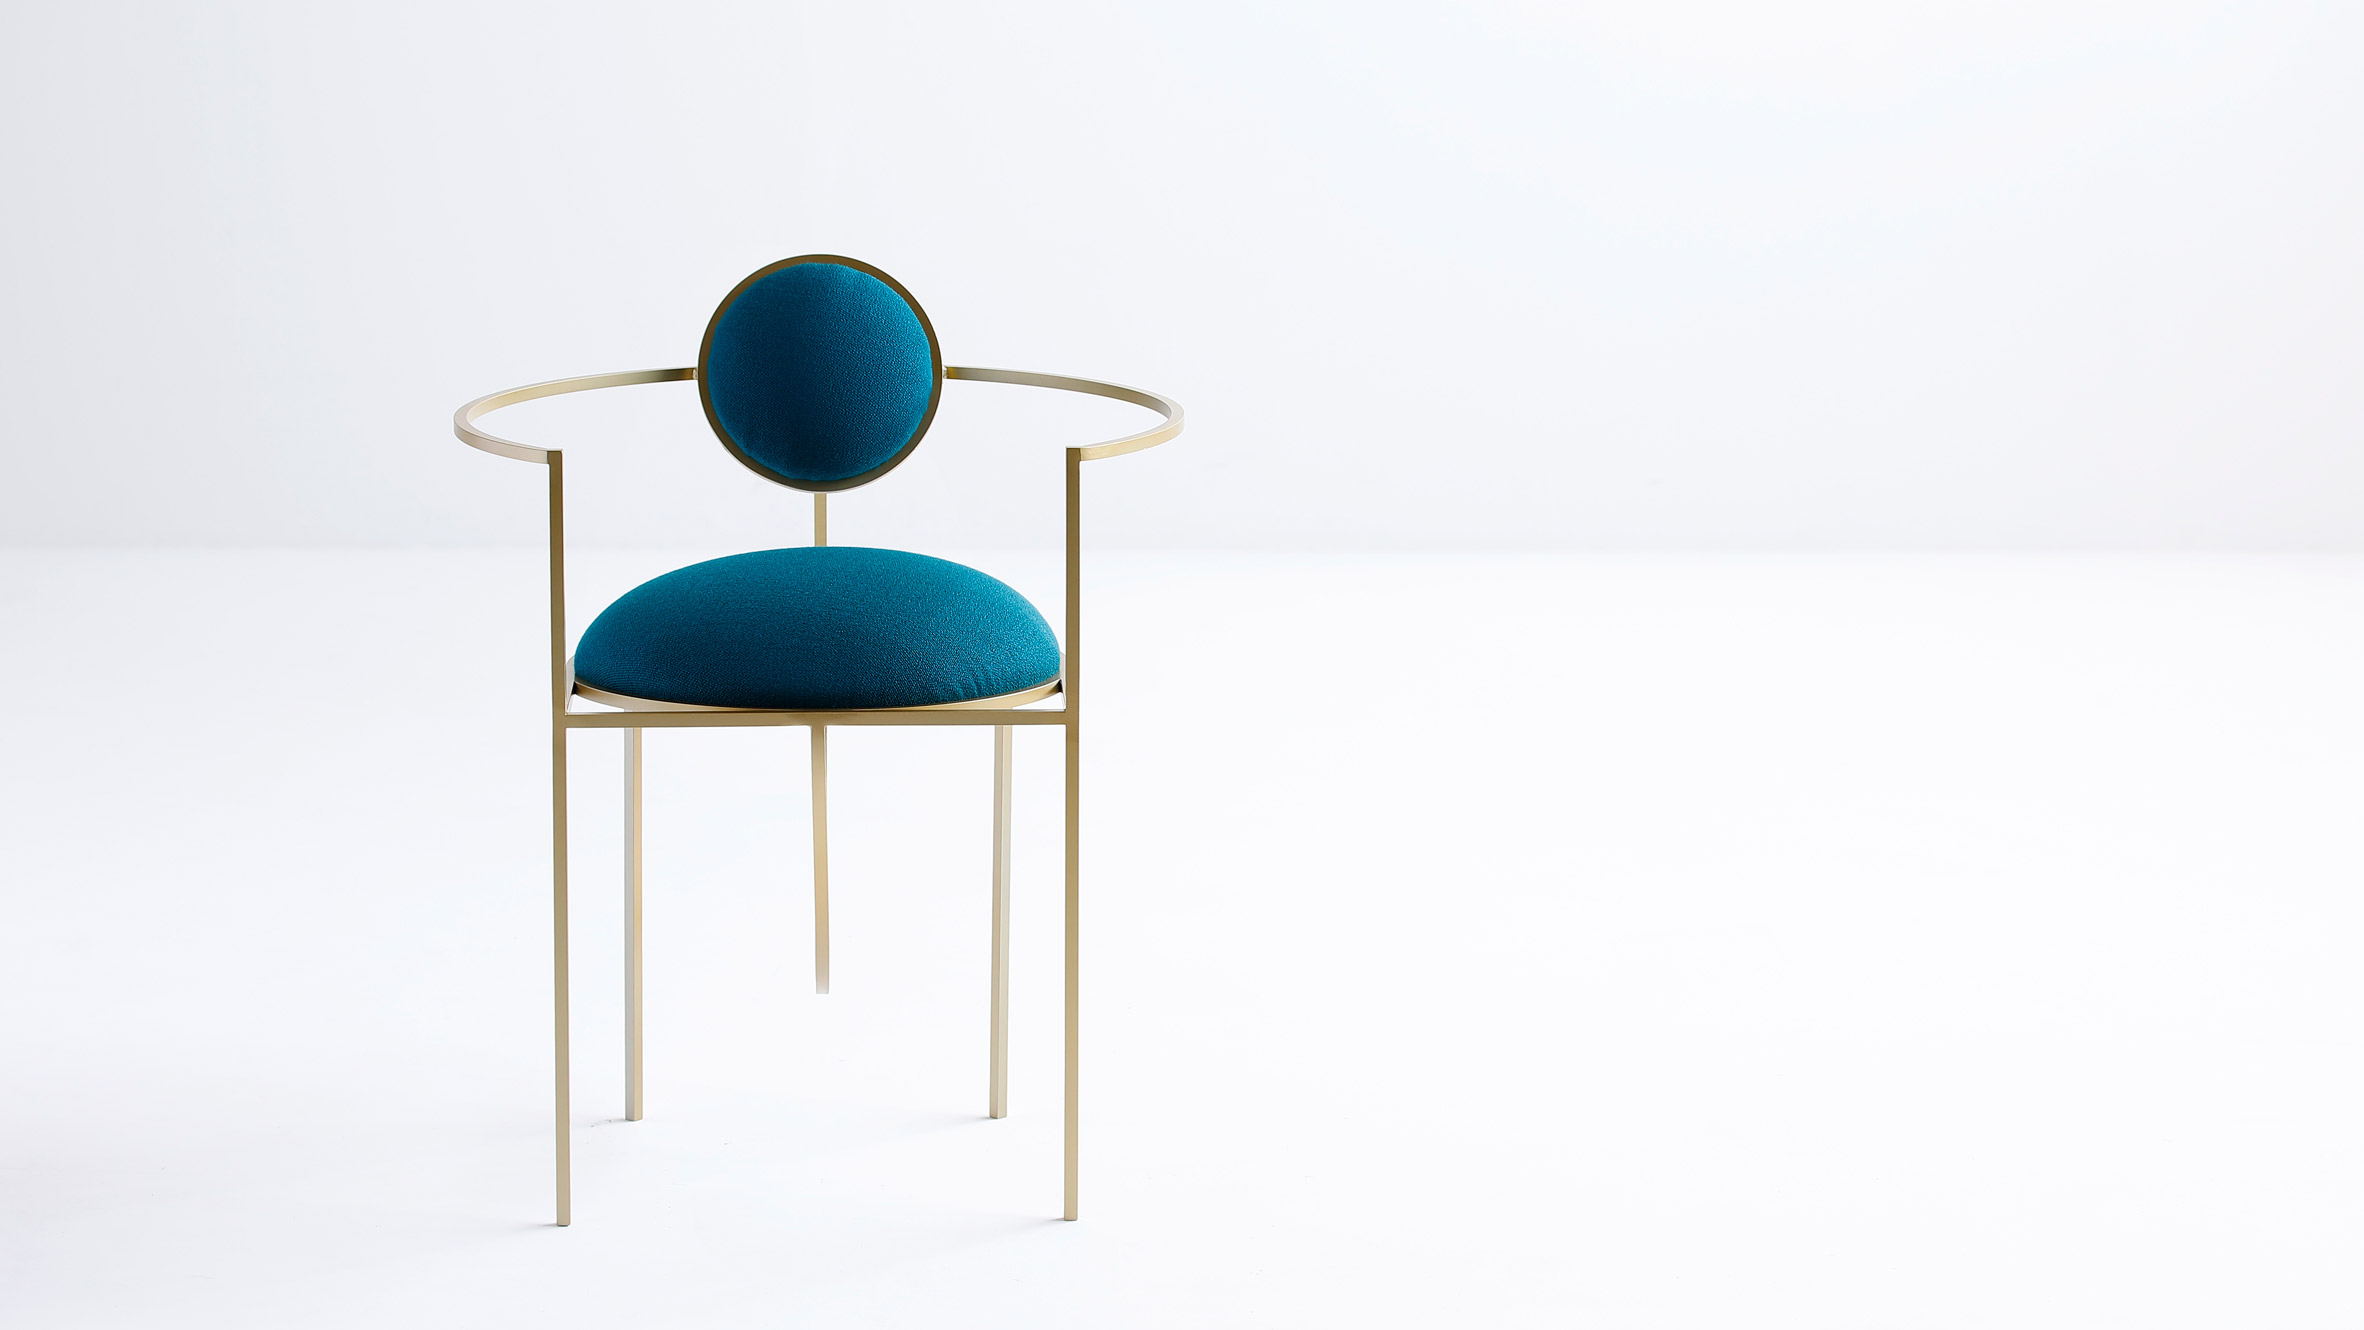 Studio Chairs Lara Bohinc Takes Cues From Celestial Forms For First Seating